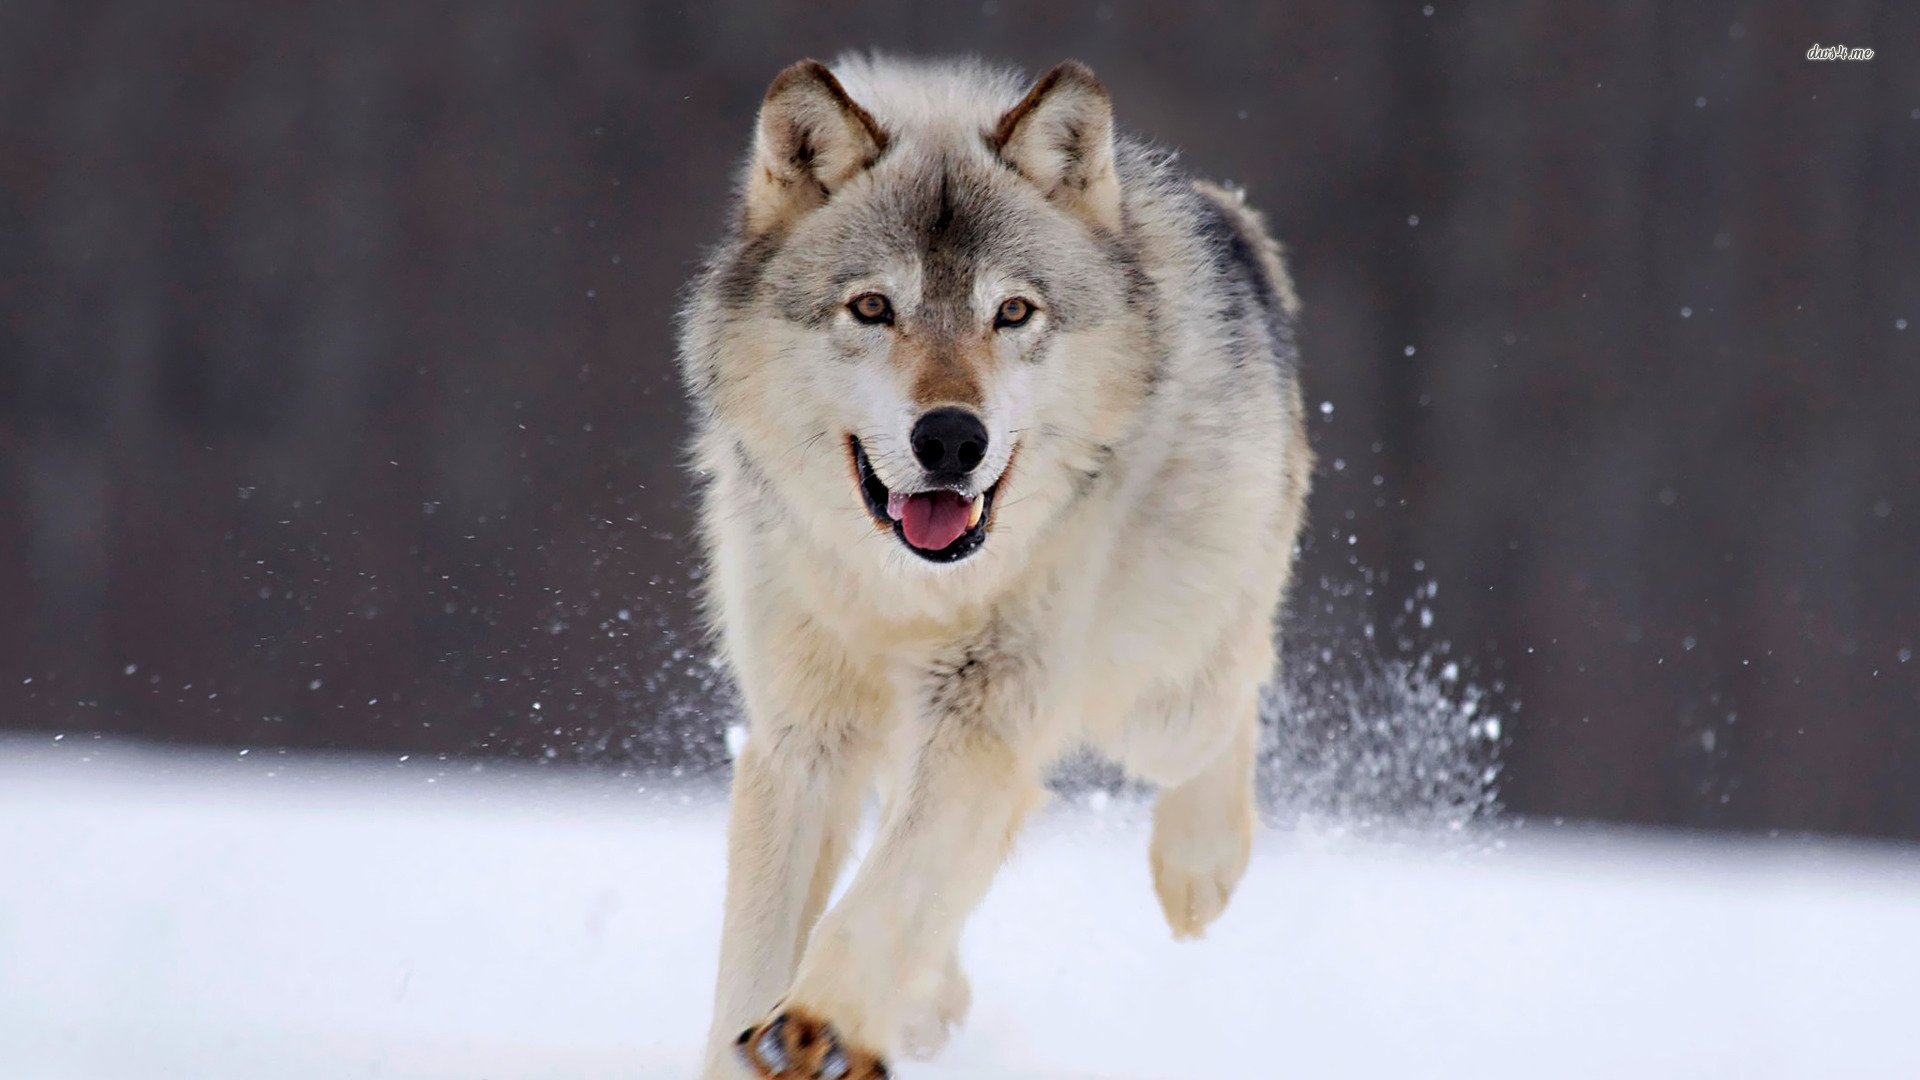 Wolf wallpaper   Animal wallpapers   3651 1920x1080